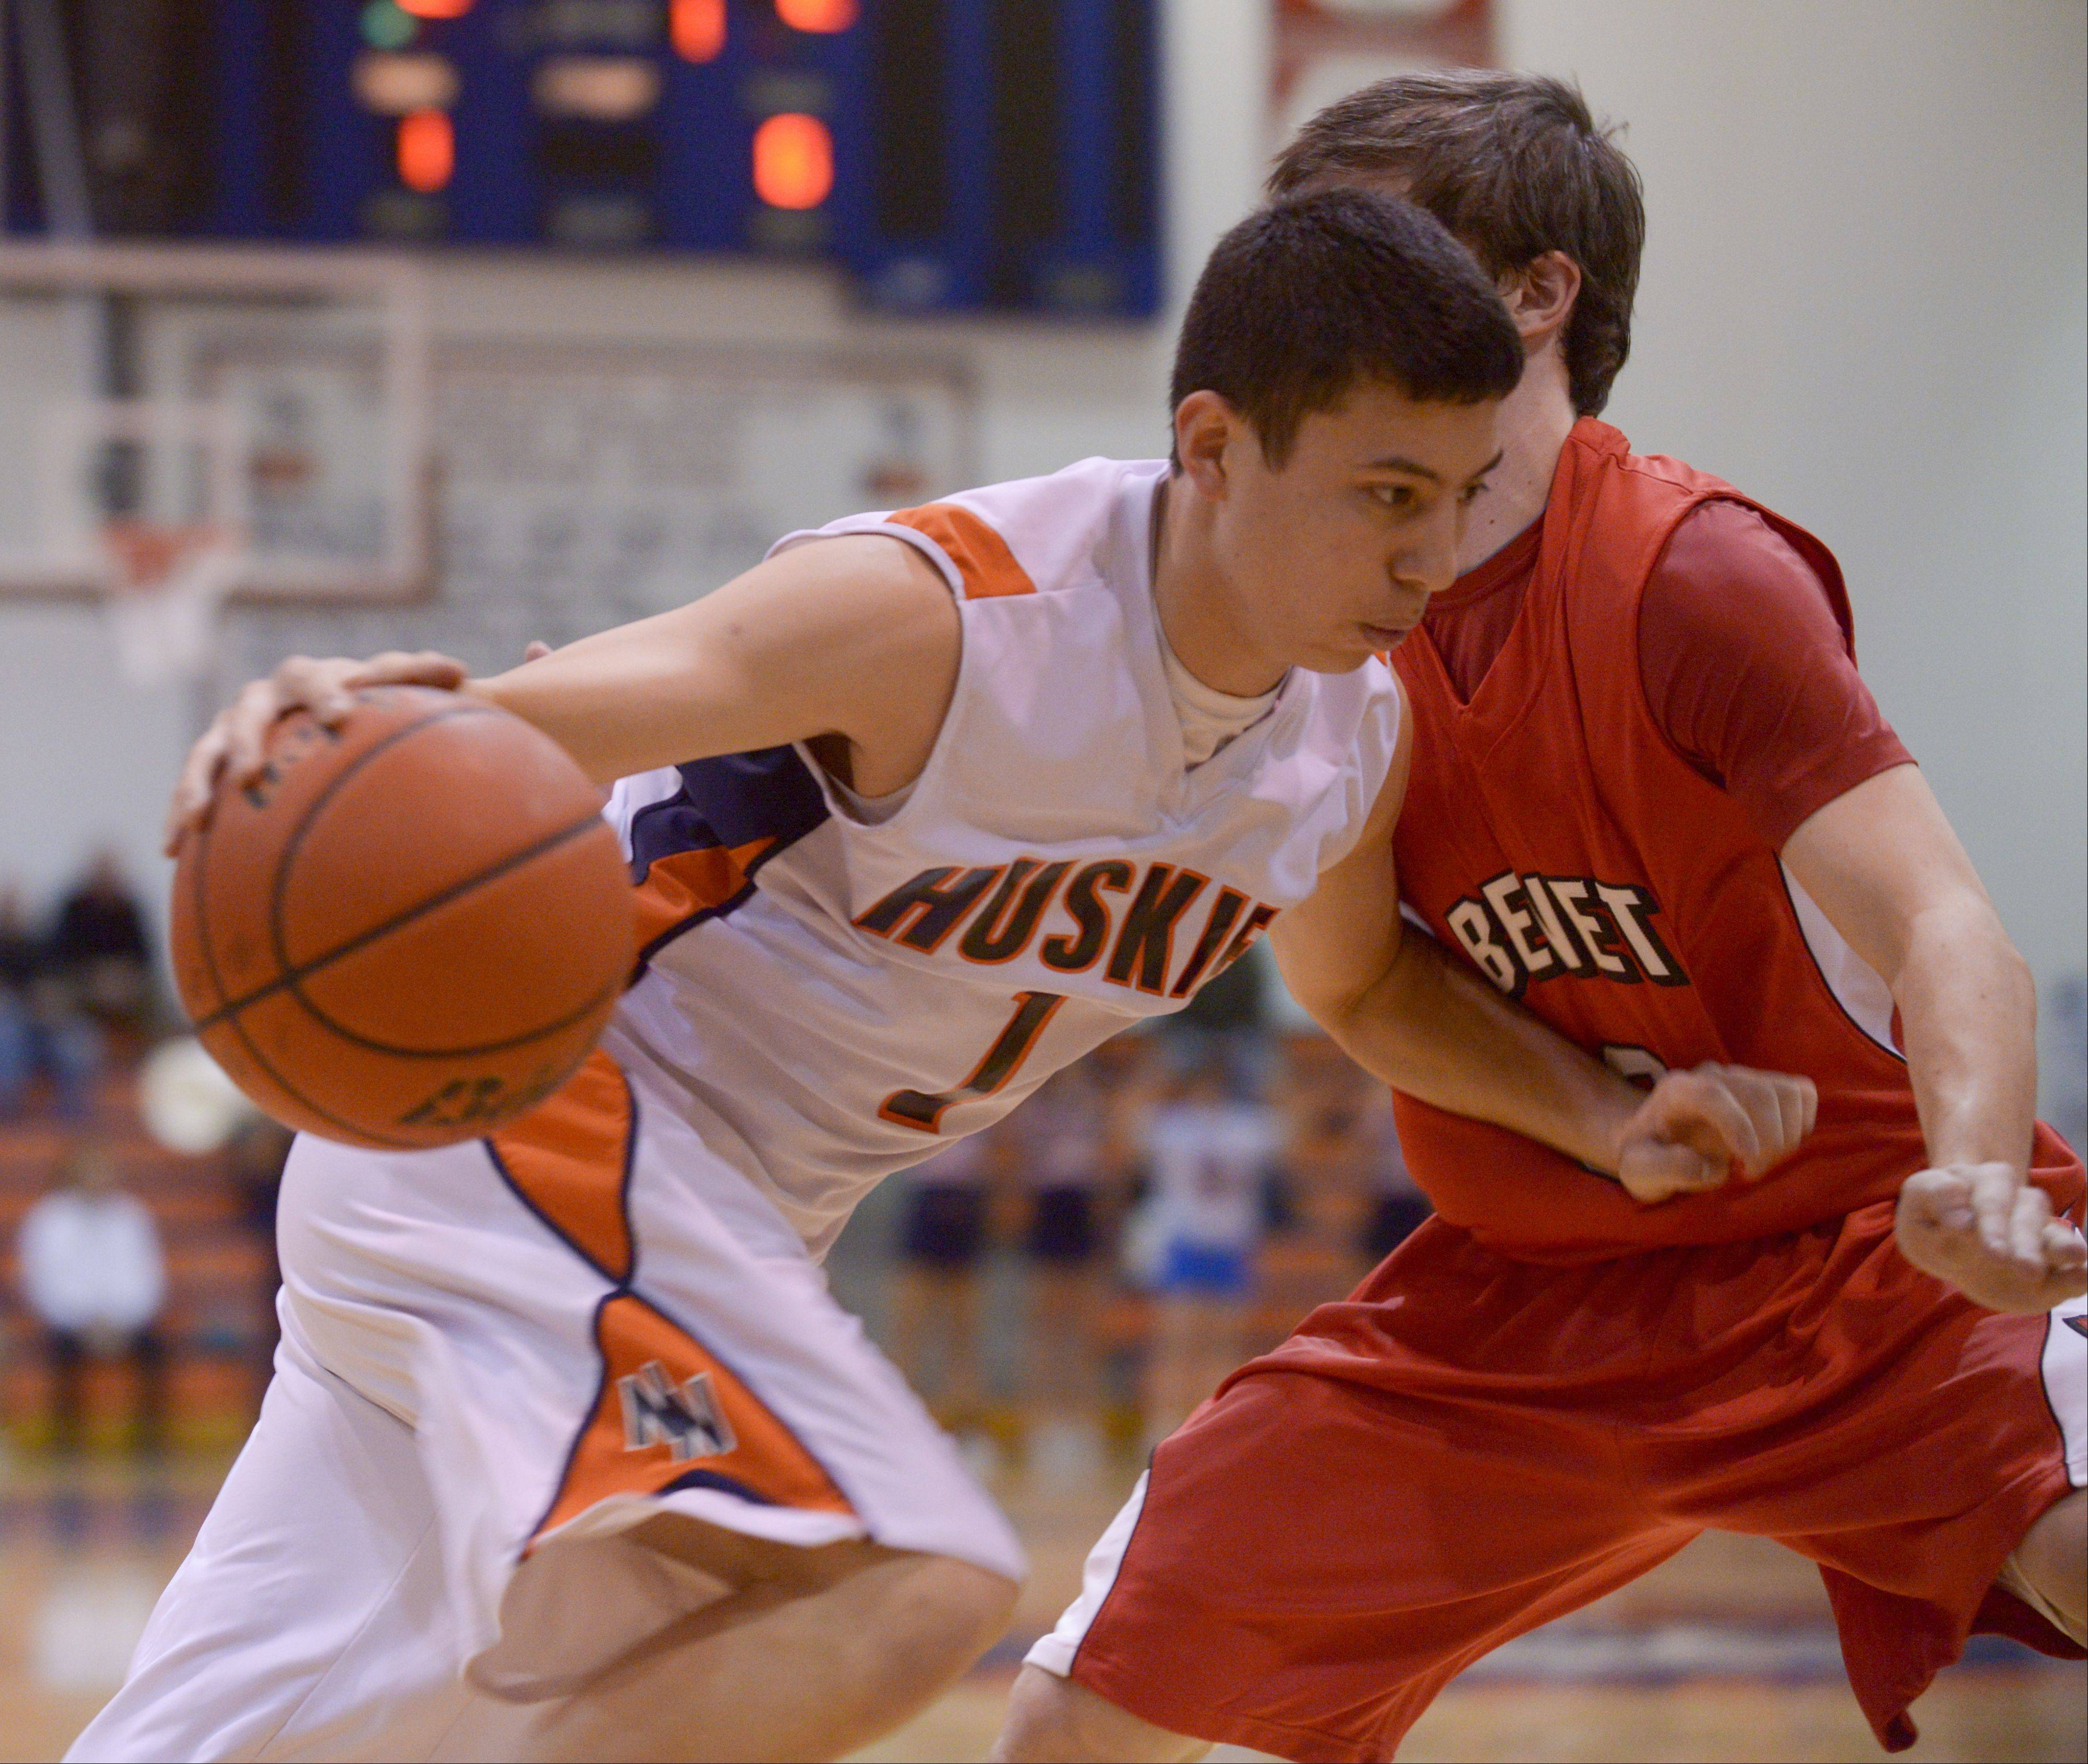 Naperville North's Jayson Winick drives around Benet's Collin Pellettieri during in boys basketball in Naperville Sunday.